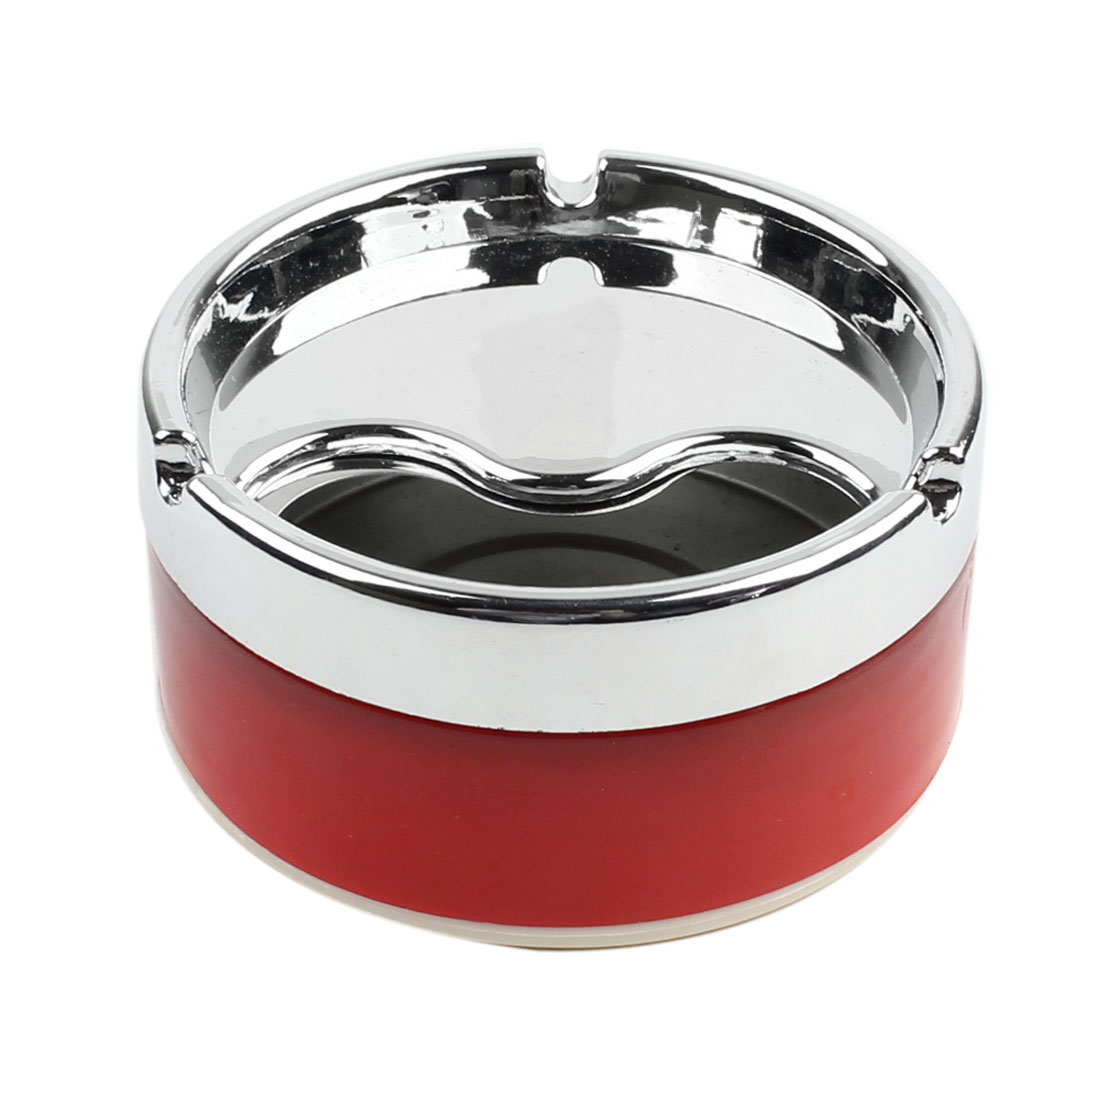 Silver Tone Stainless Steel Rotating Lid Cigarette Smoking Ashtray Red